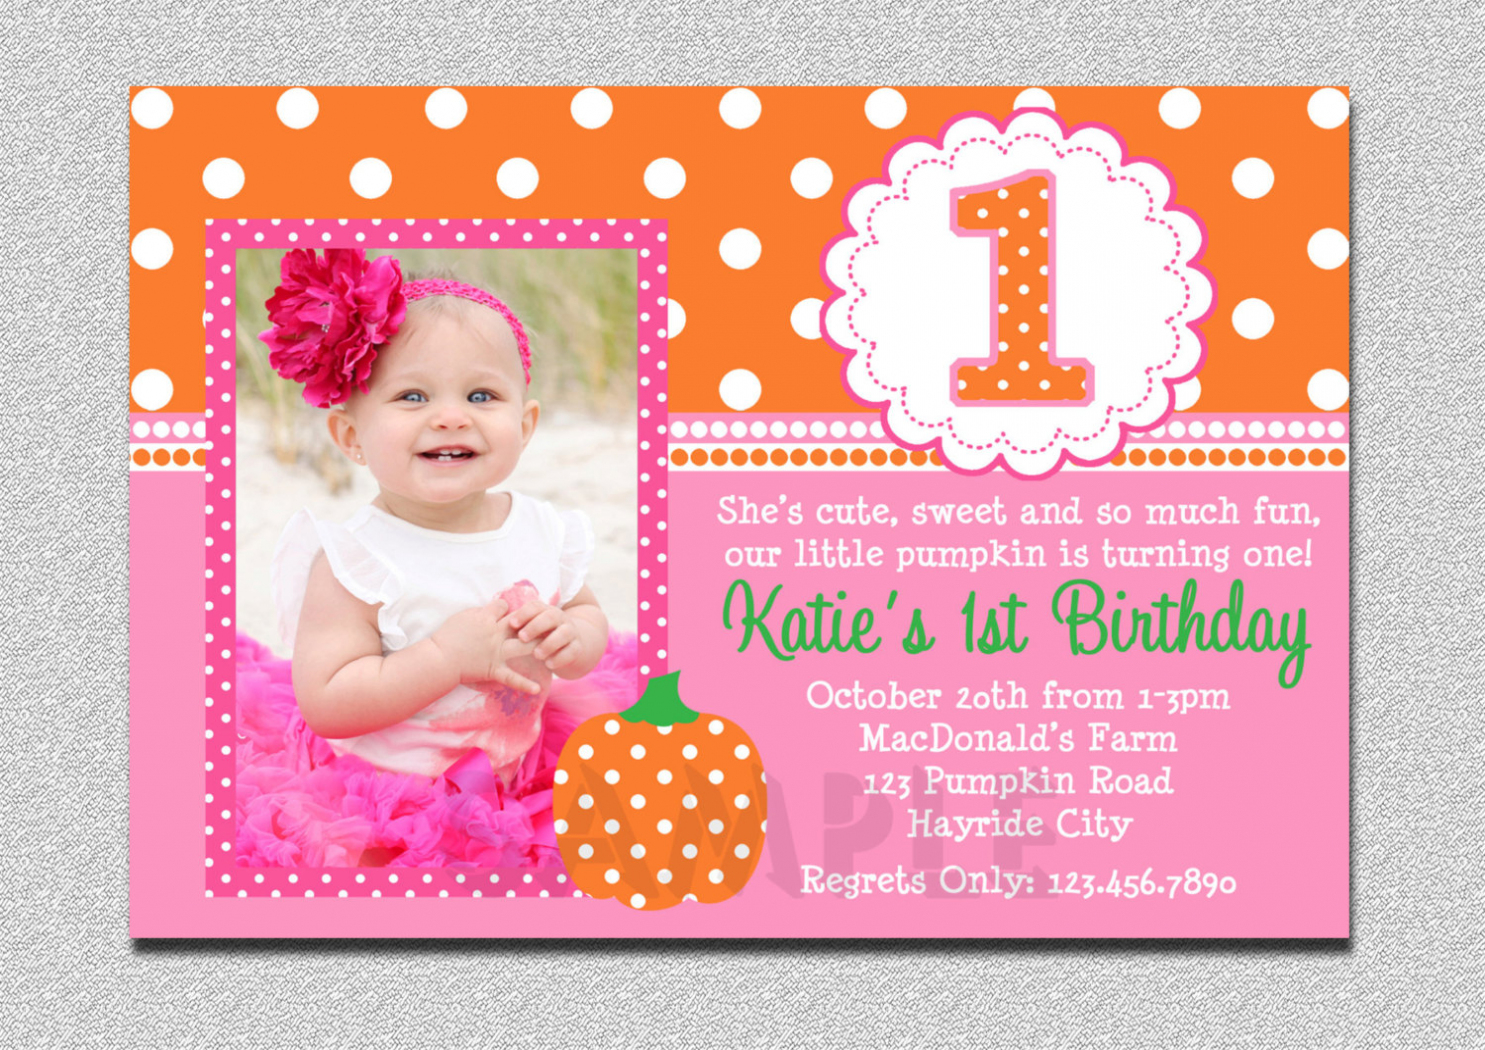 baby girl birthday invitation card design ; 1st-birthday-invitations-girl-free-invitations-ideas-1st-birthday-invitation-card-for-baby-girl